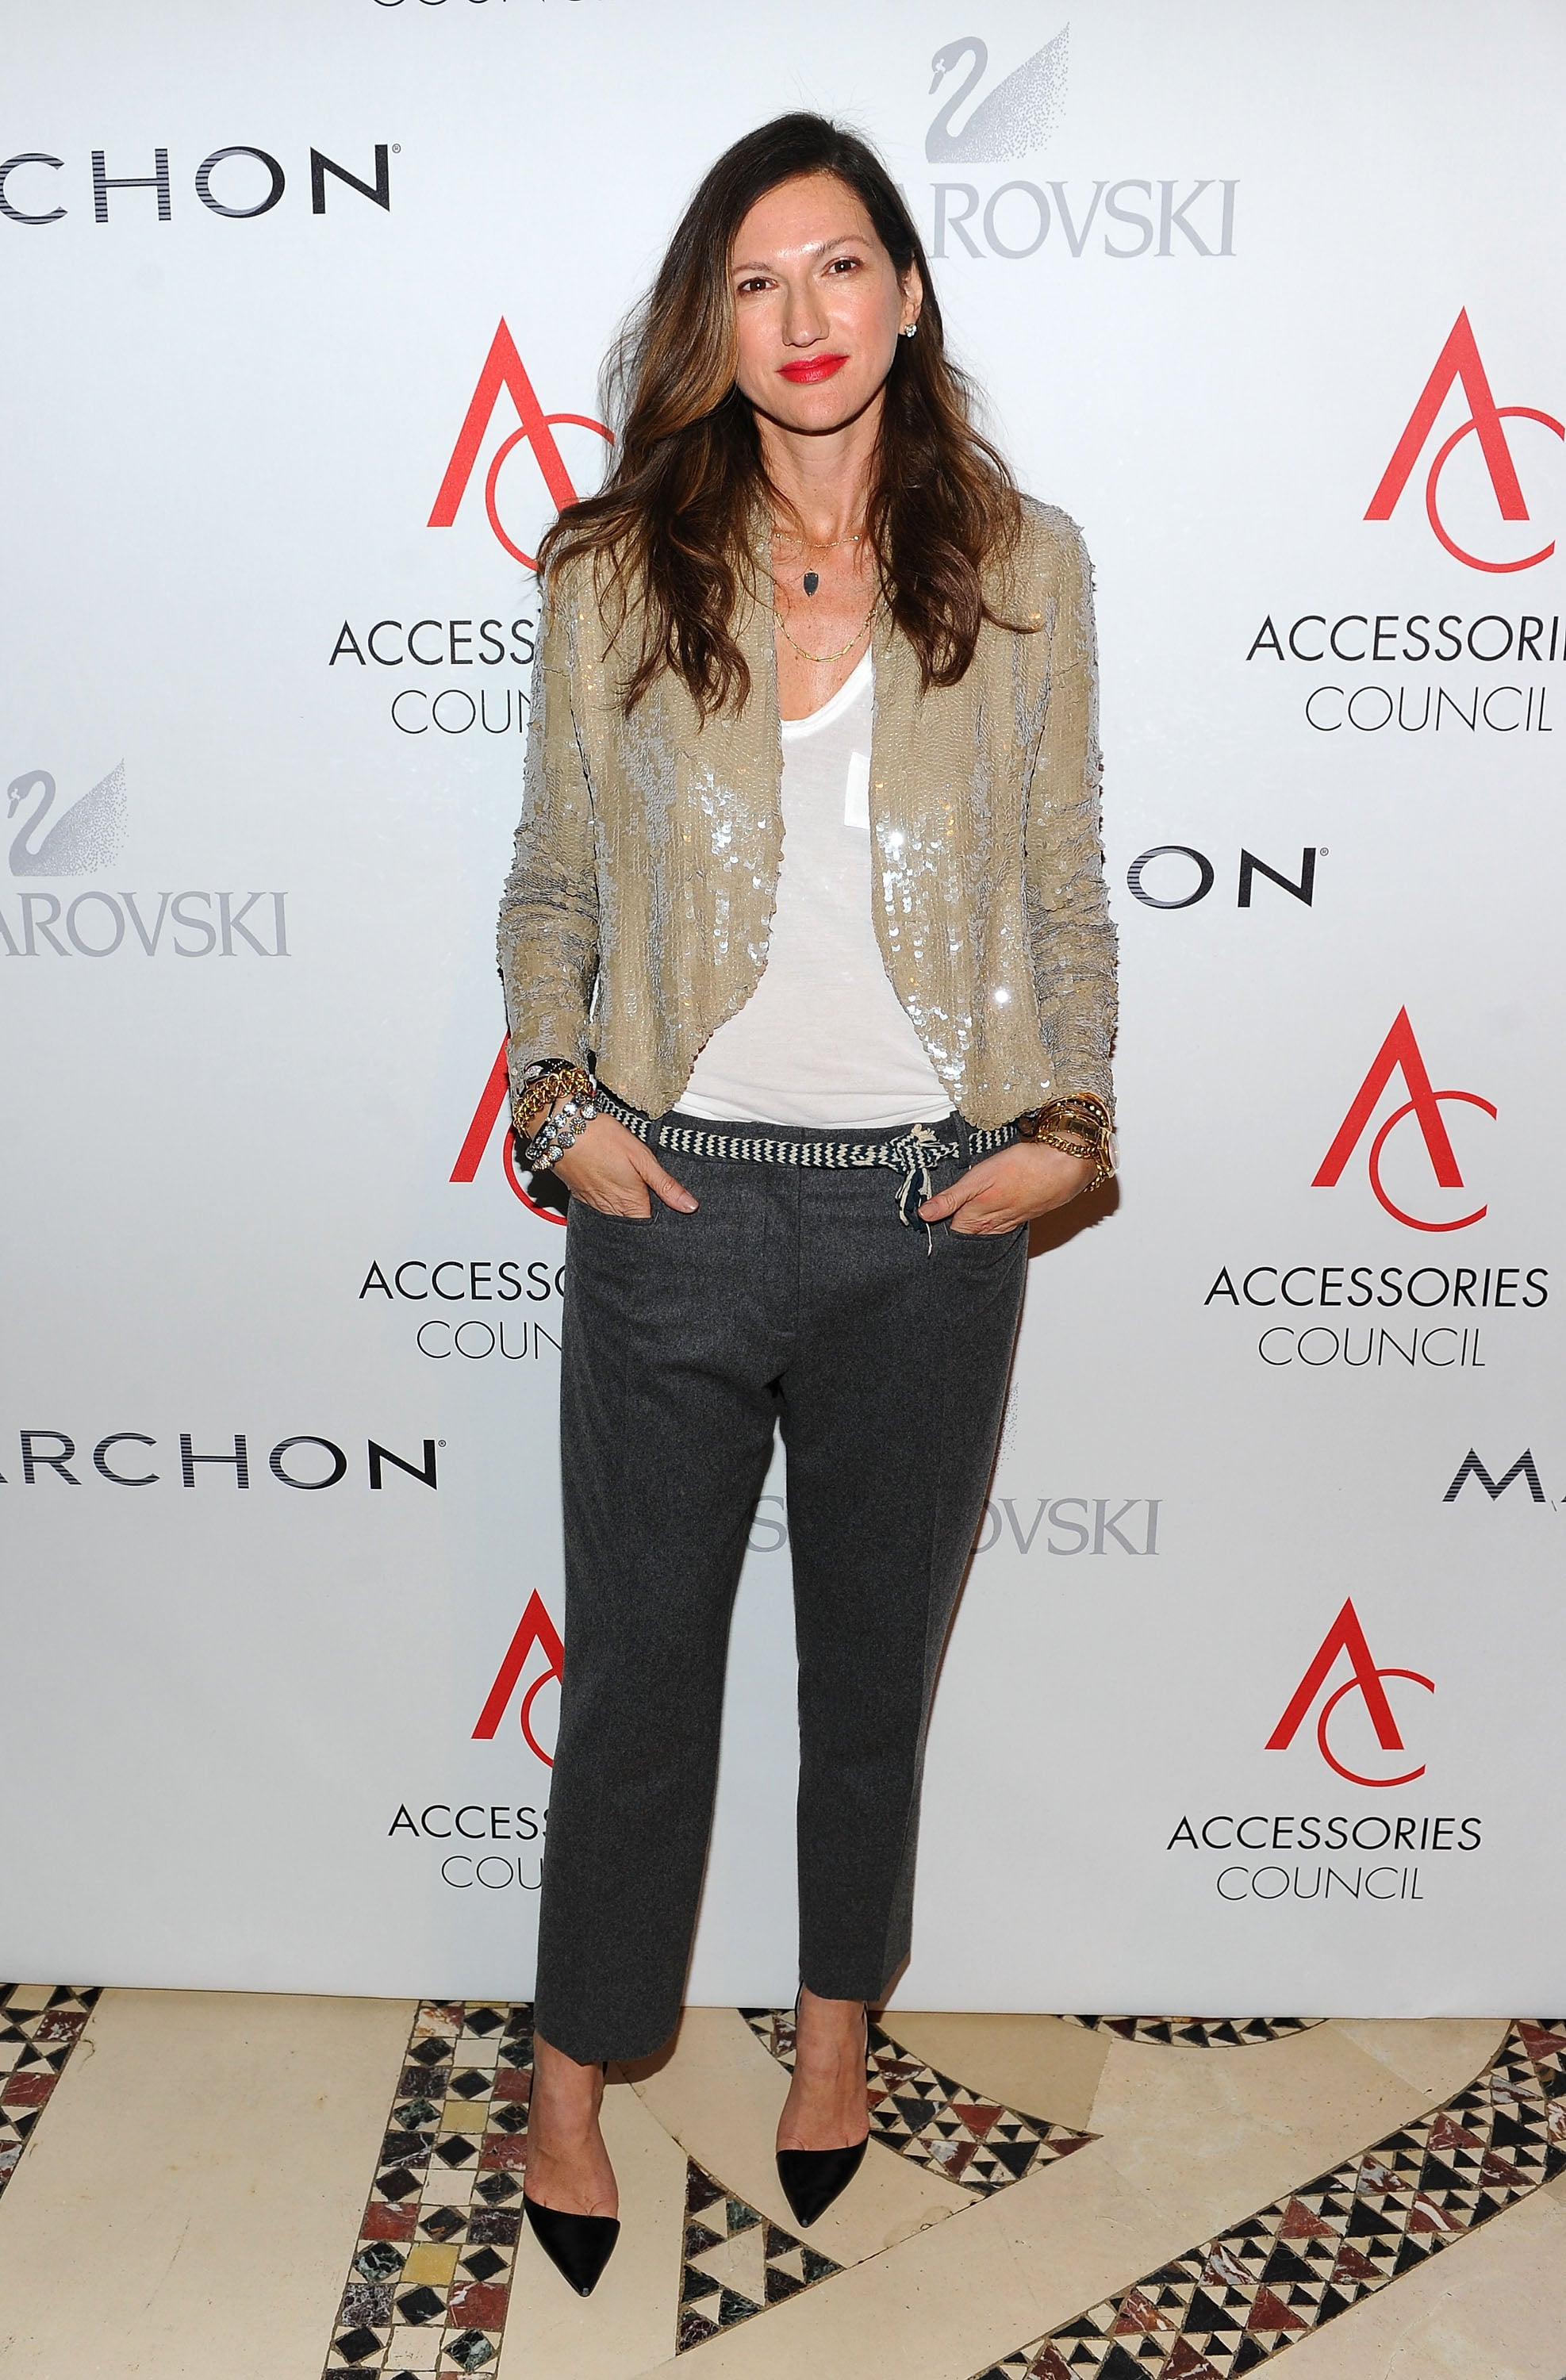 Along with boyfriend jeans, Lyons and J.Crew were at the cutting edge of bringing sequins into daytime.